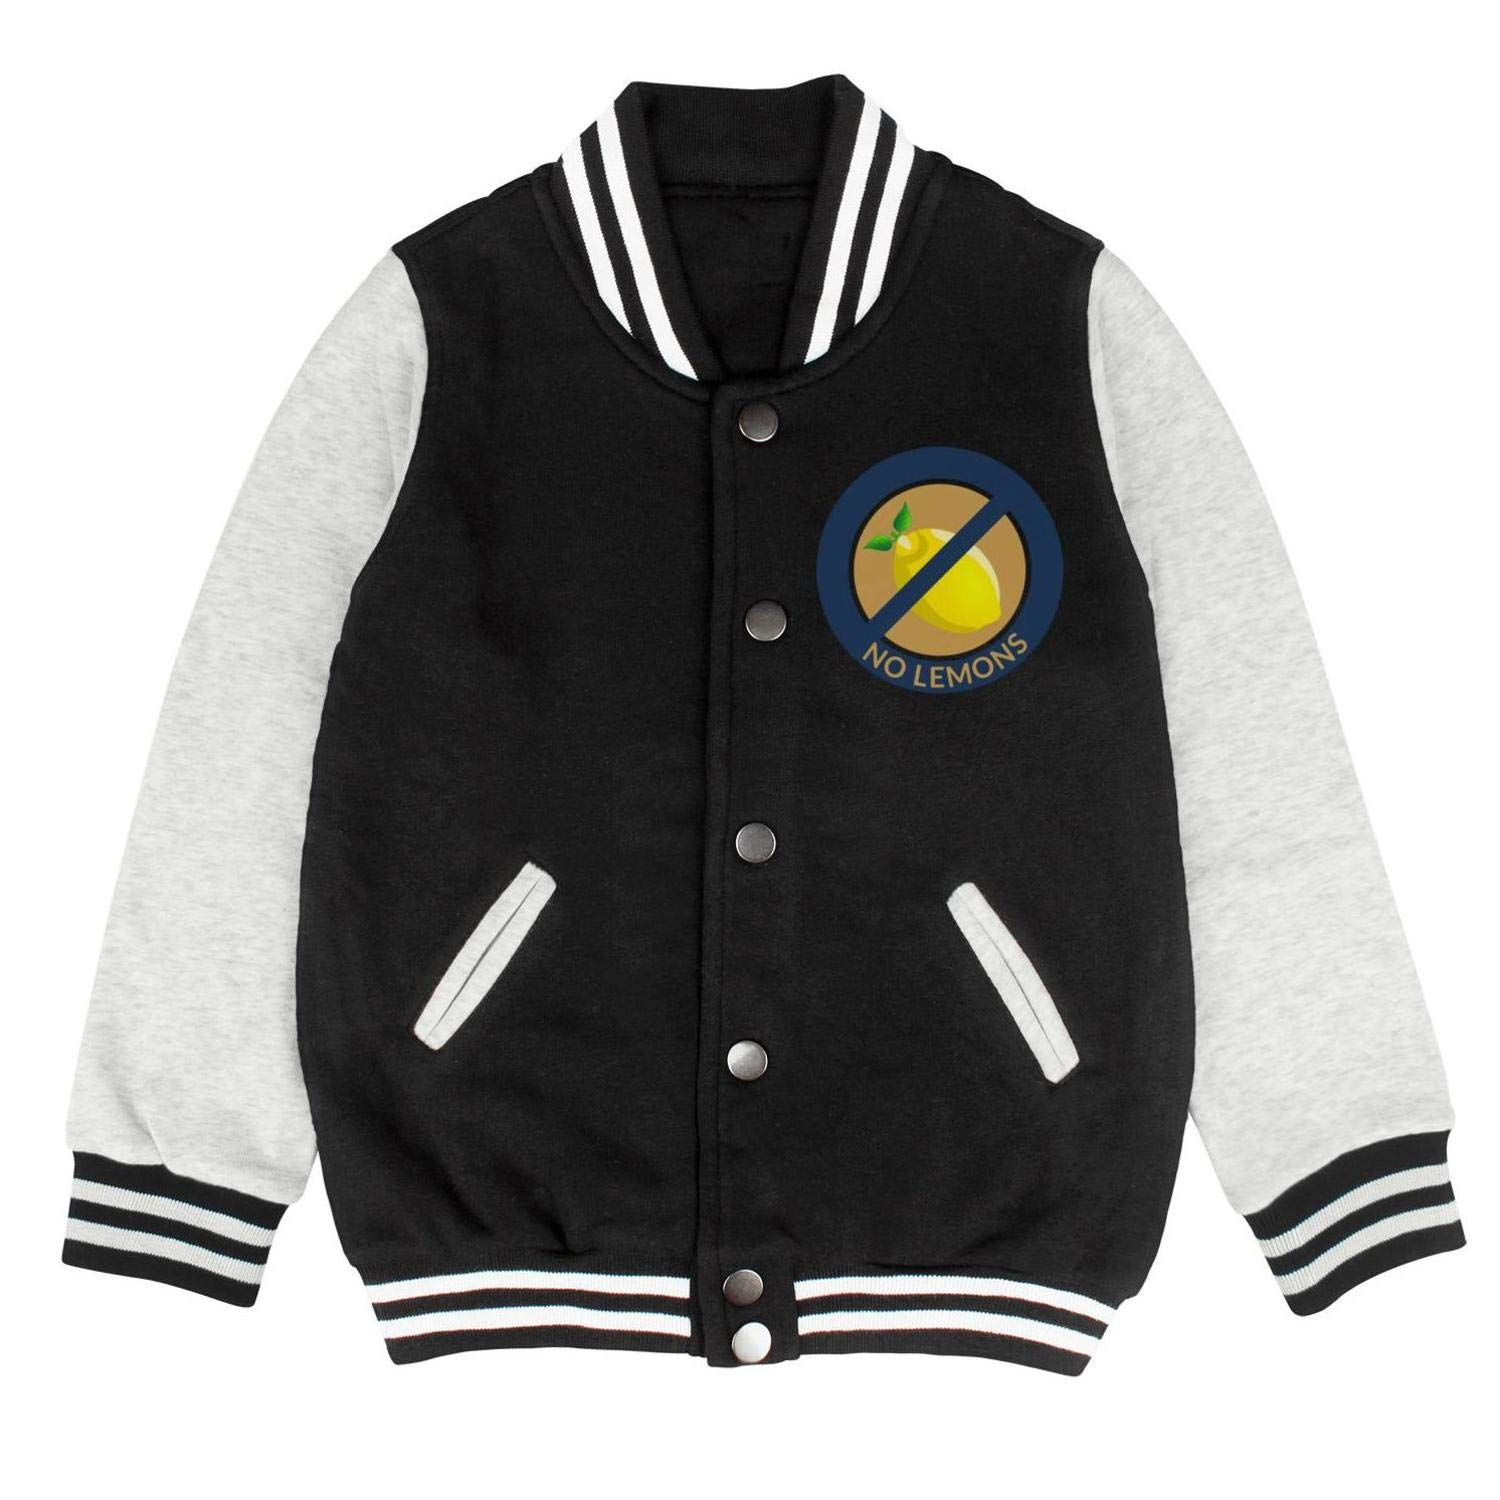 Colorful Lemon Silhouette Baseball Pullovers Unisex Cool Fall Jackets for Girls